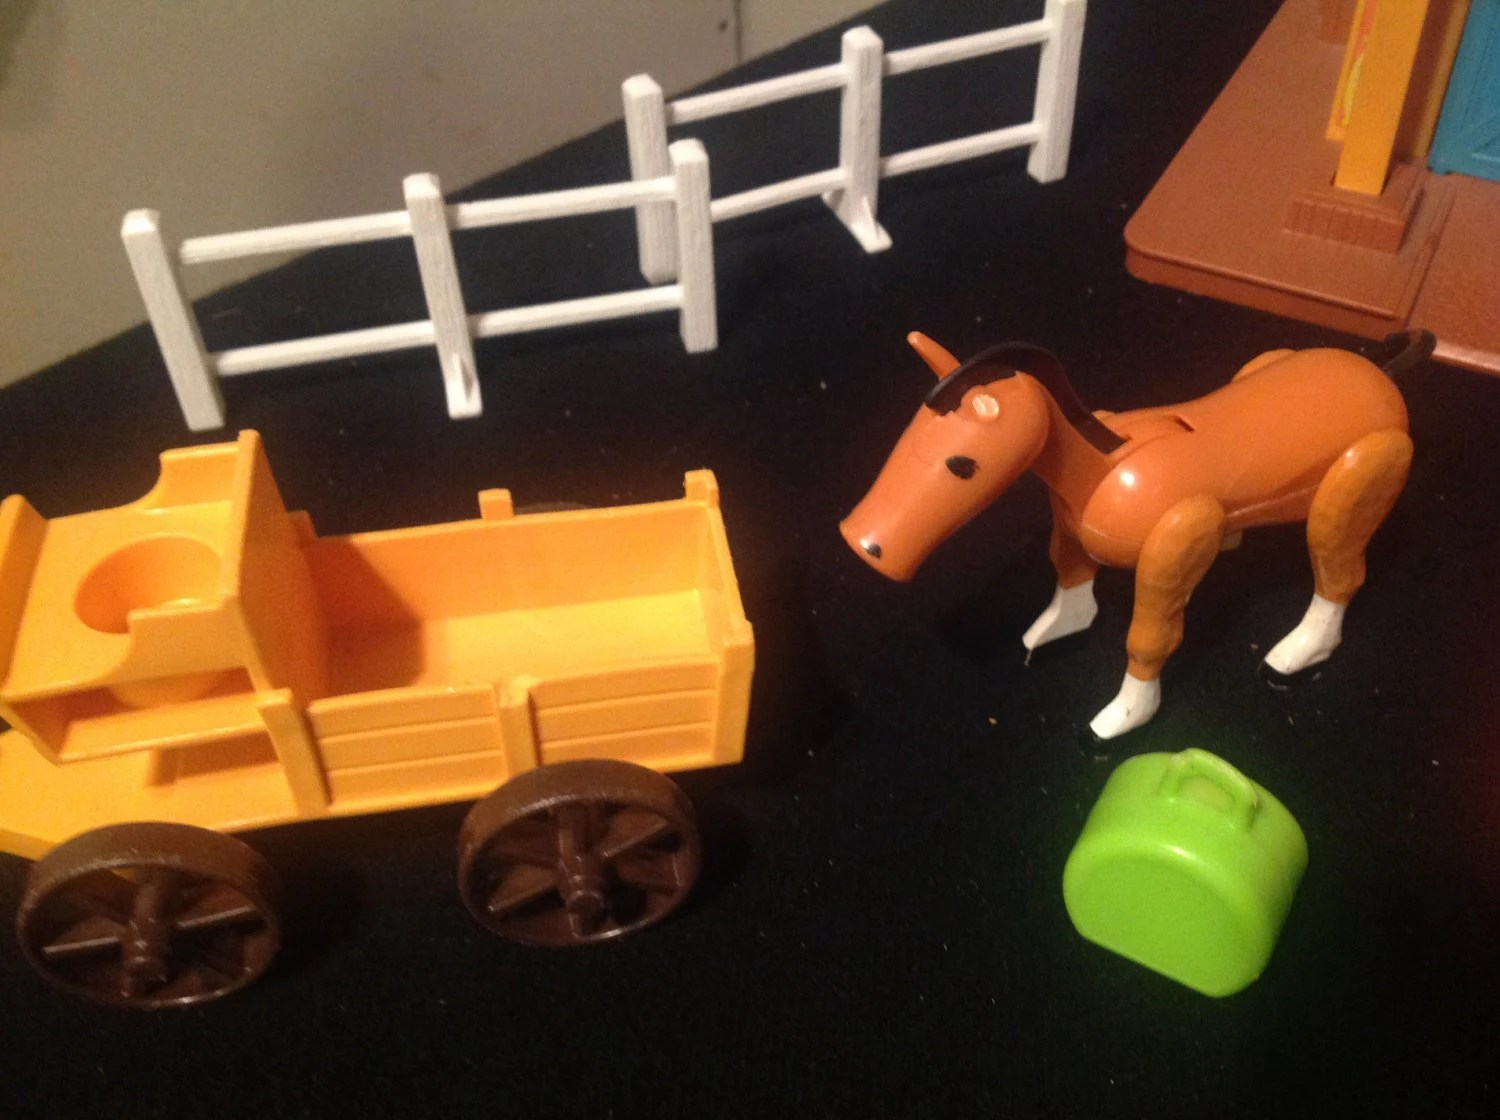 Vintage fisher price western town image 4